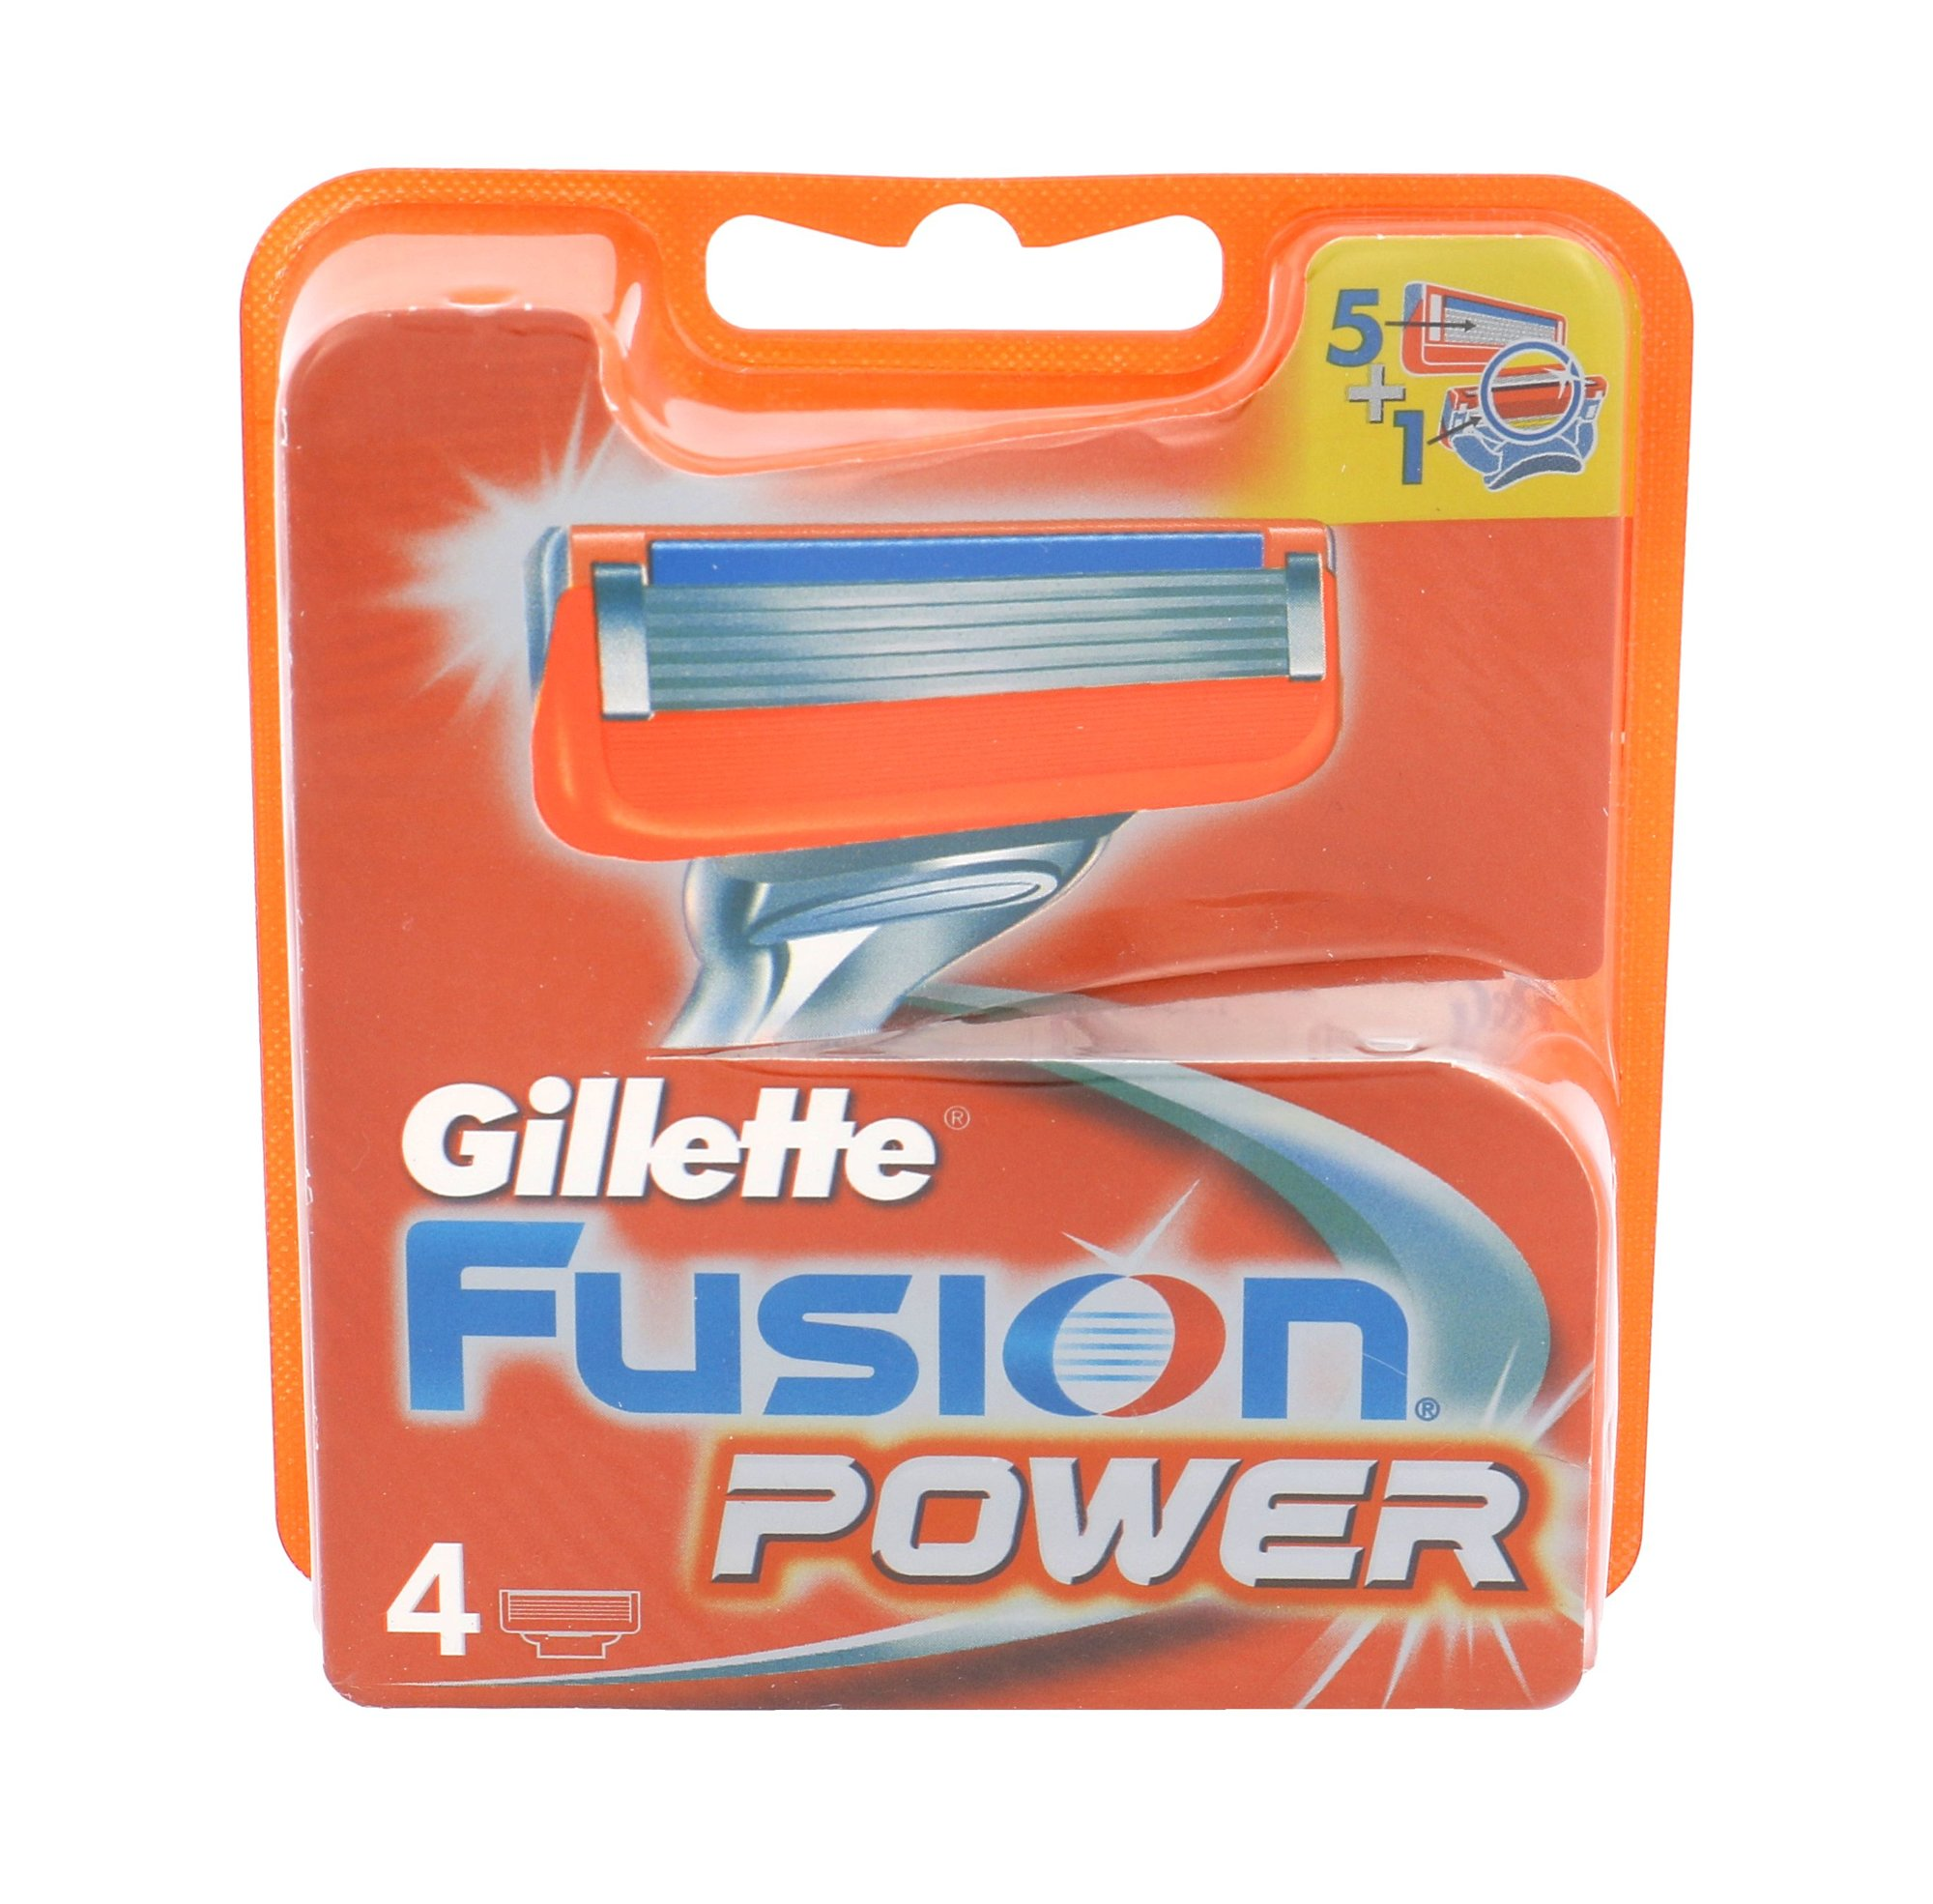 Gillette Fusion Power Cosmetic 4ml